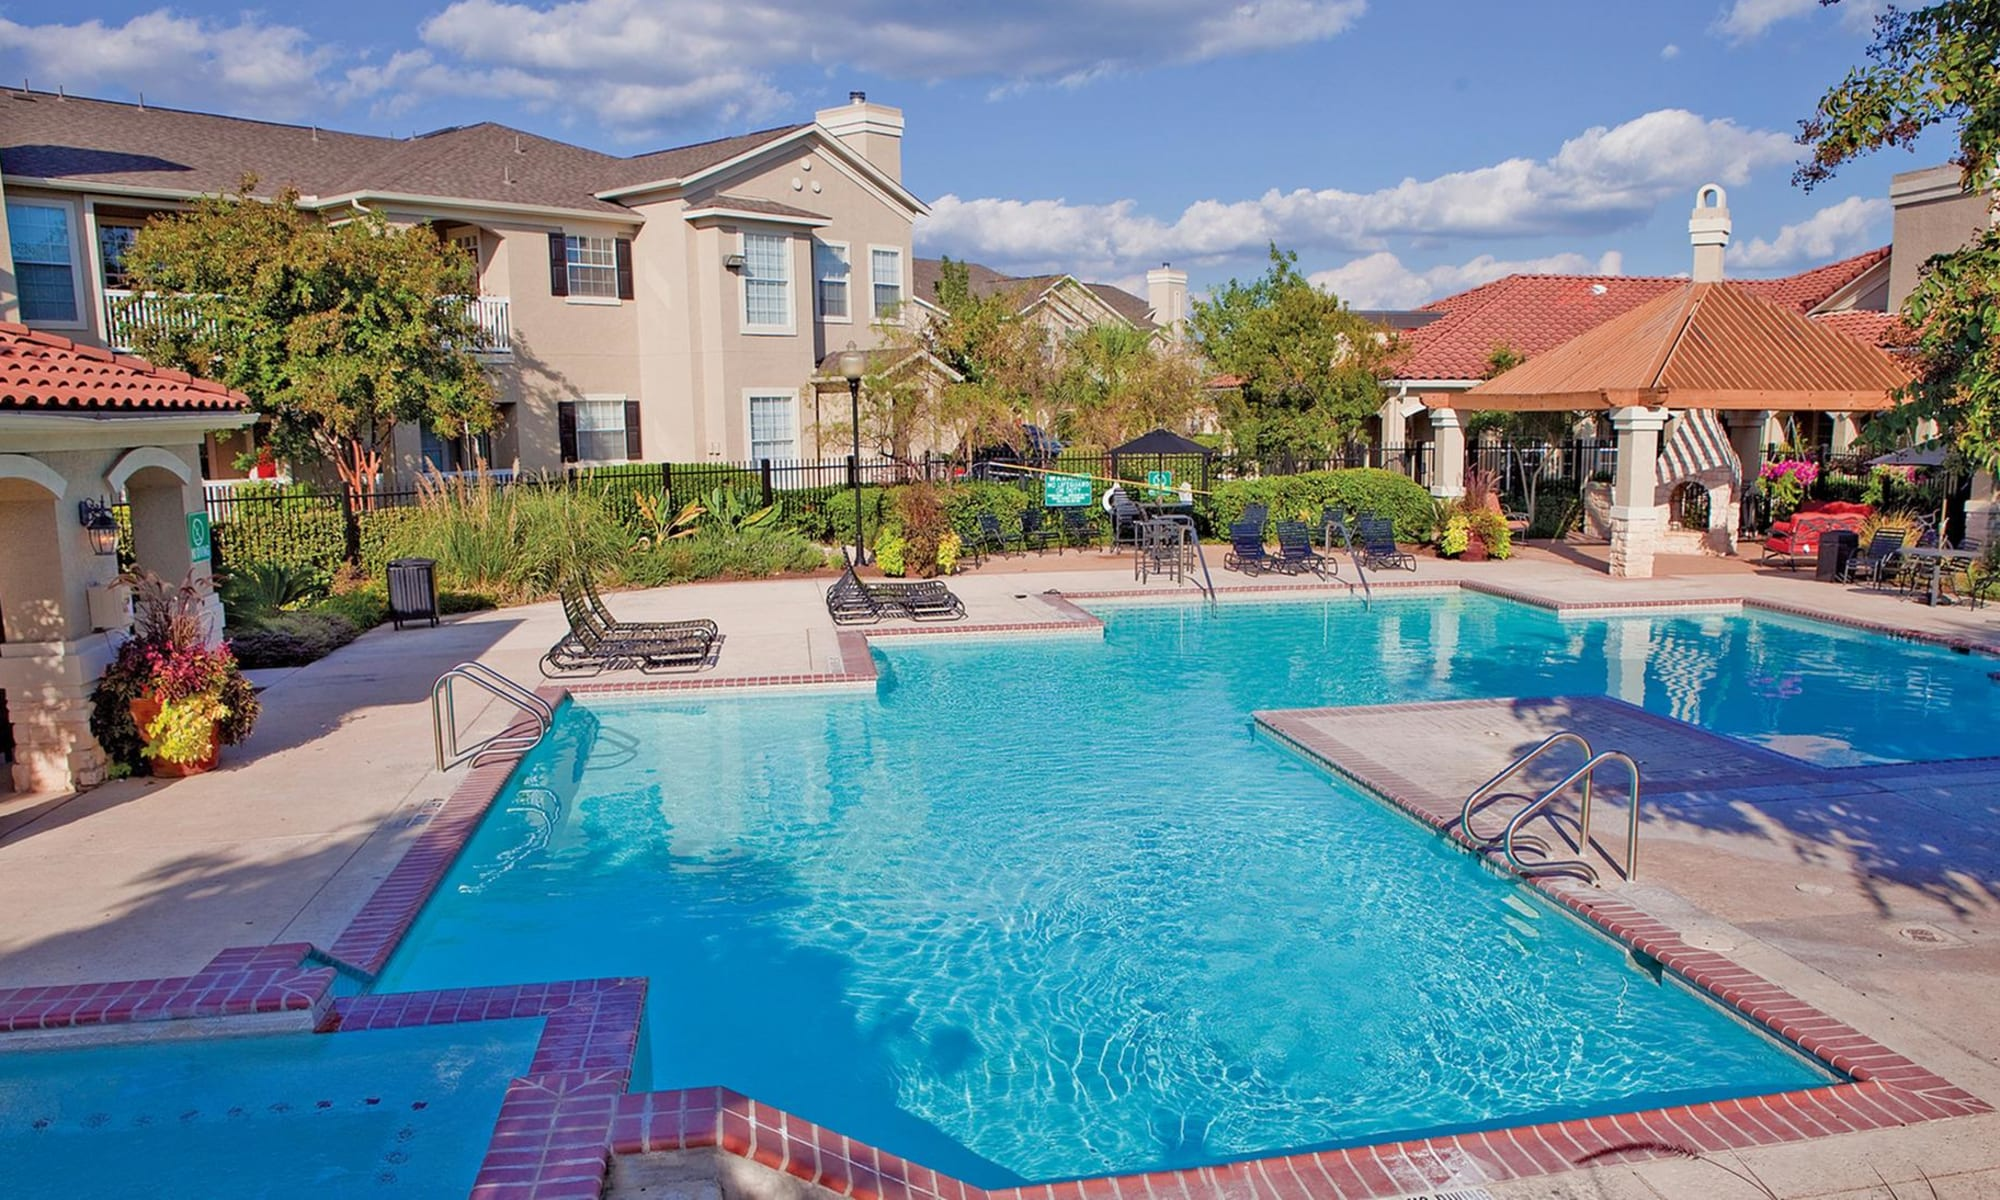 Apartments at The View at Encino Commons in San Antonio, Texas